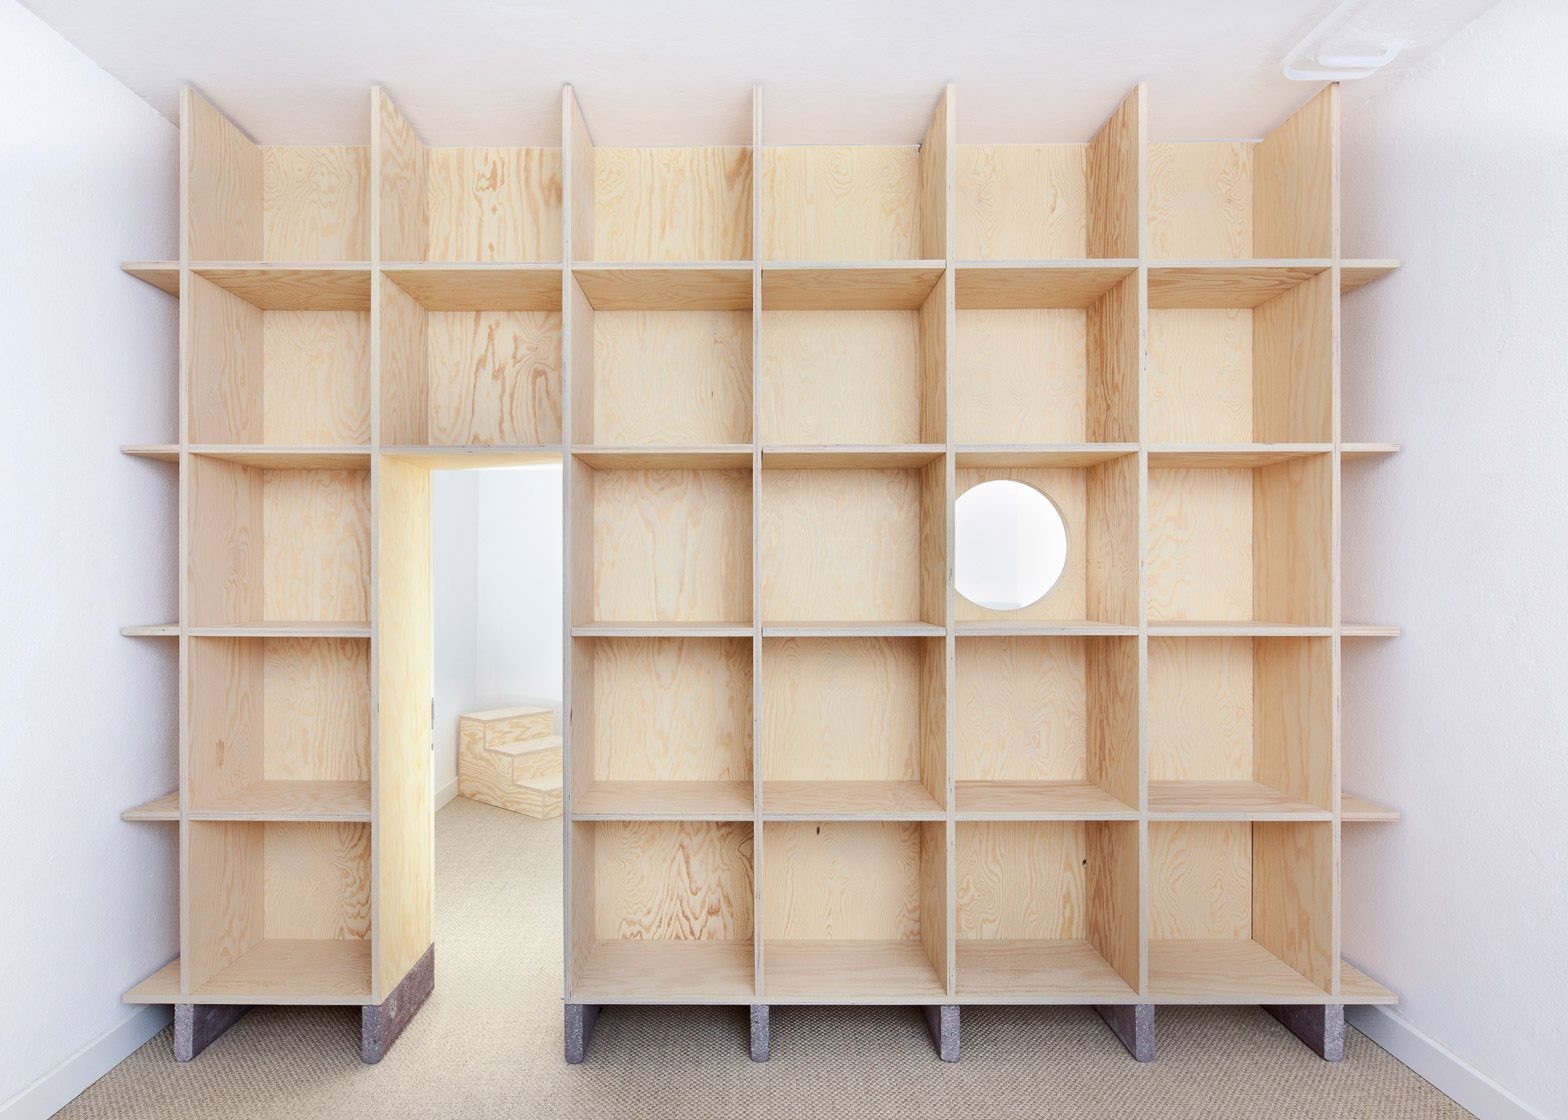 Bedroom door through shelving like this only modules to be more designed aur lie monet - Wooden bedroom divider ...